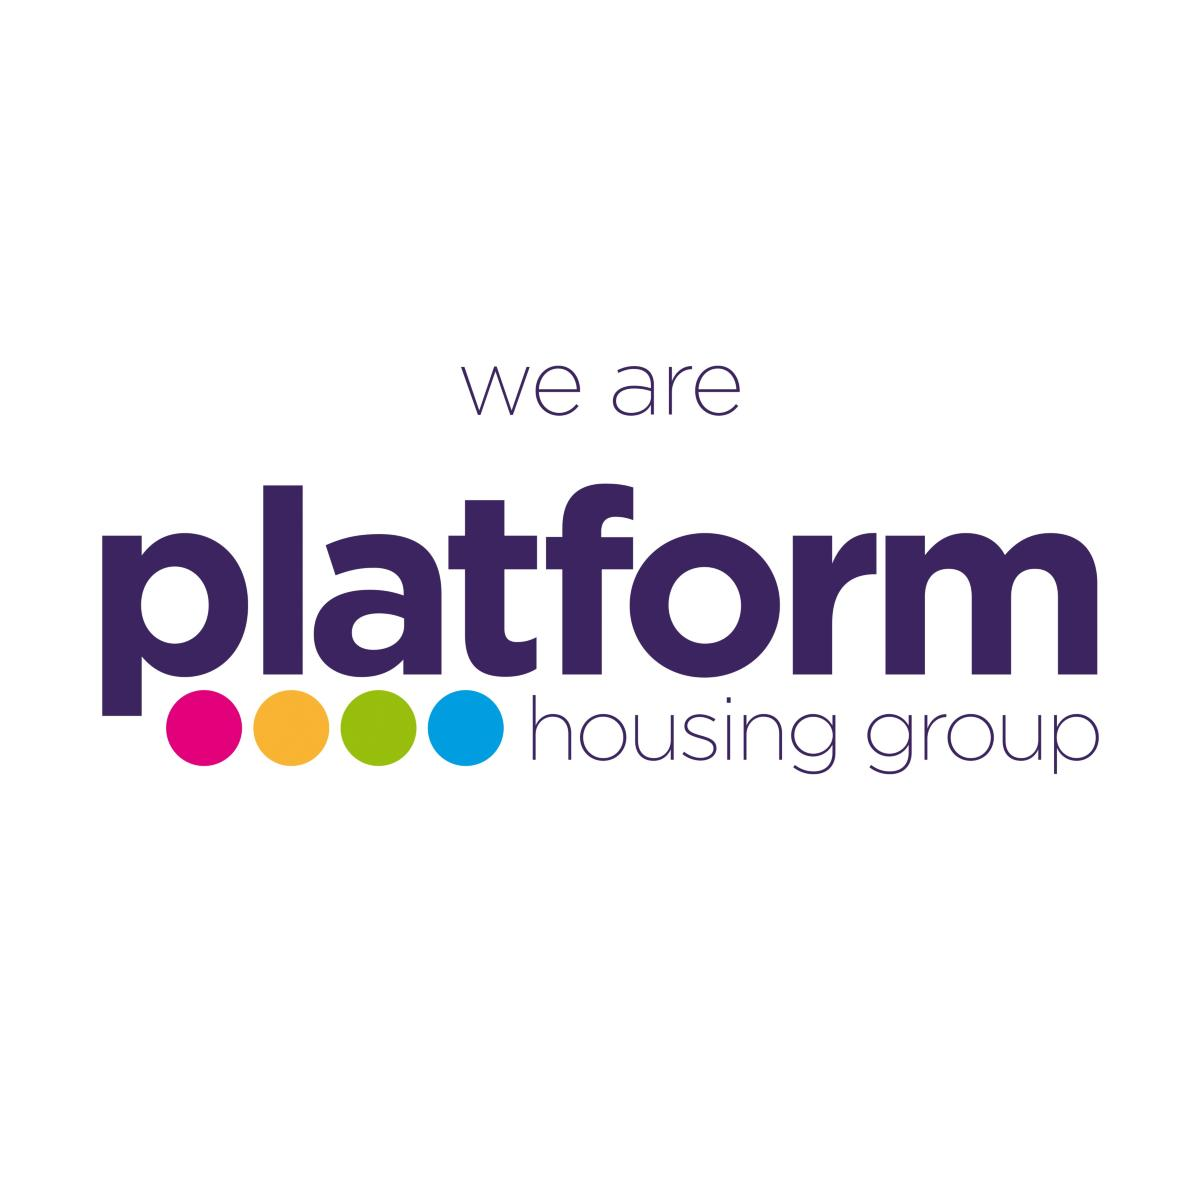 image-we-are-platform-housing-group-FL.jpg